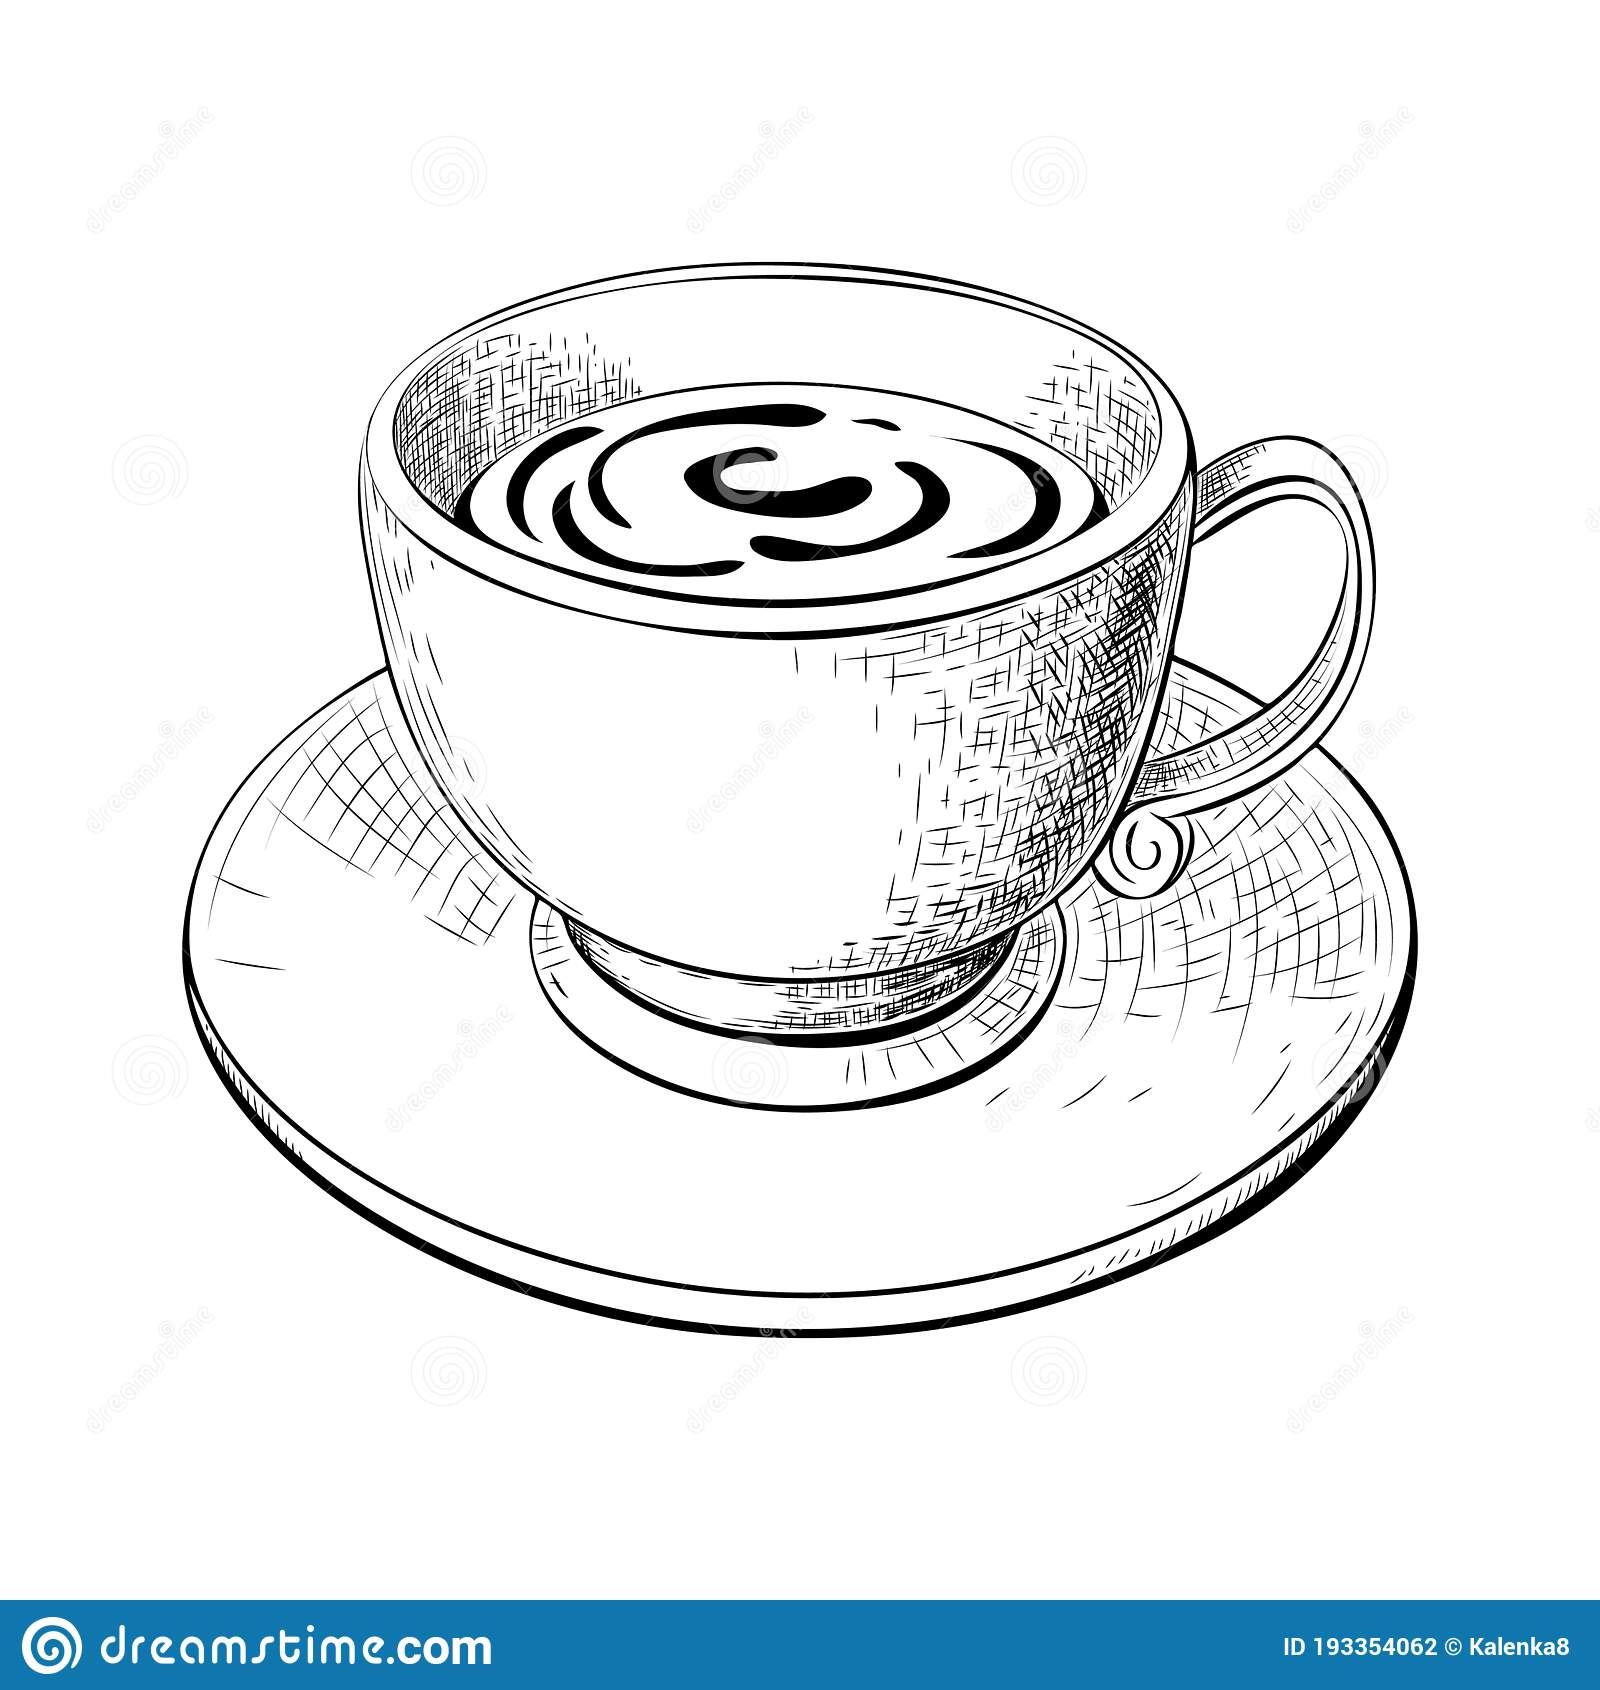 One Cup Of Coffee Or Tea With Saucer Hand Drawn Sketch Isolated On White Engraved Vector Illustration Of Coffee Or Tea Stock Vector Illustration Of Espresso Cappuccino 193354062